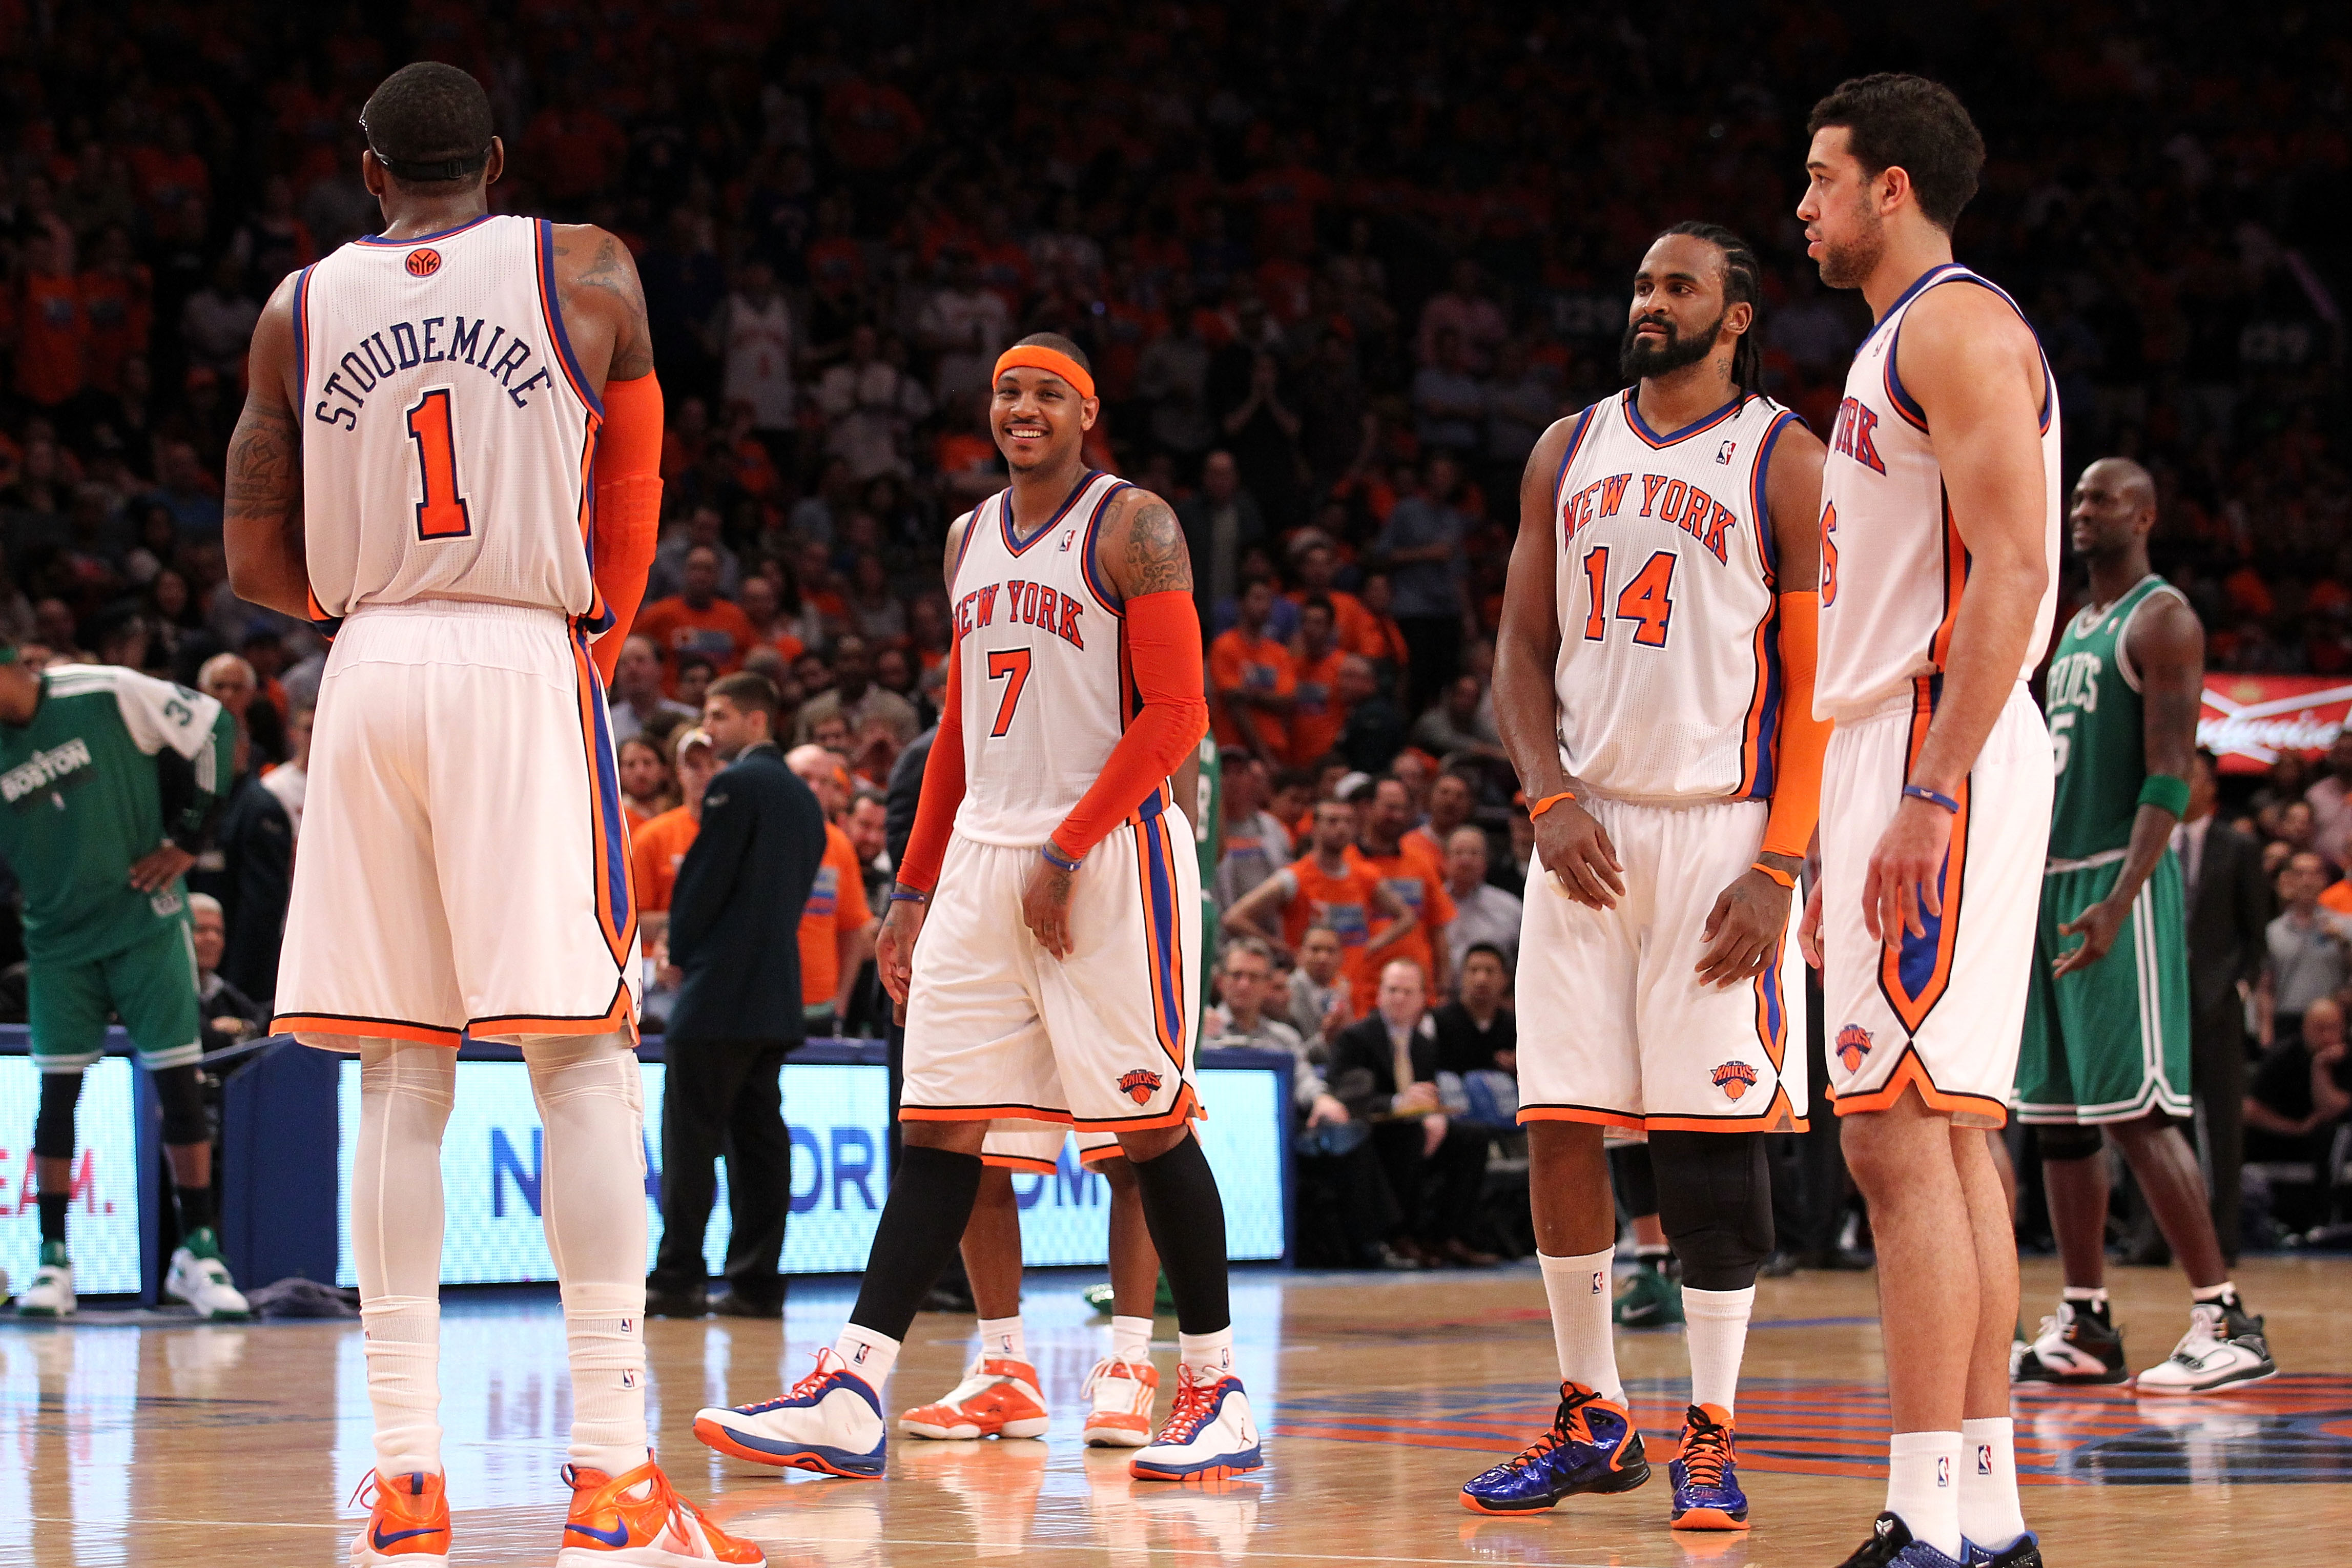 NEW YORK, NY - APRIL 24:  (L-R) Amar'e Stoudemire #1, Carmelo Anthony #7, Ronny Turiaf #14 and Landry Fields #6 of the New York Knicks look on against the Boston Celtics in Game Four of the Eastern Conference Quarterfinals during the 2011 NBA Playoffs on